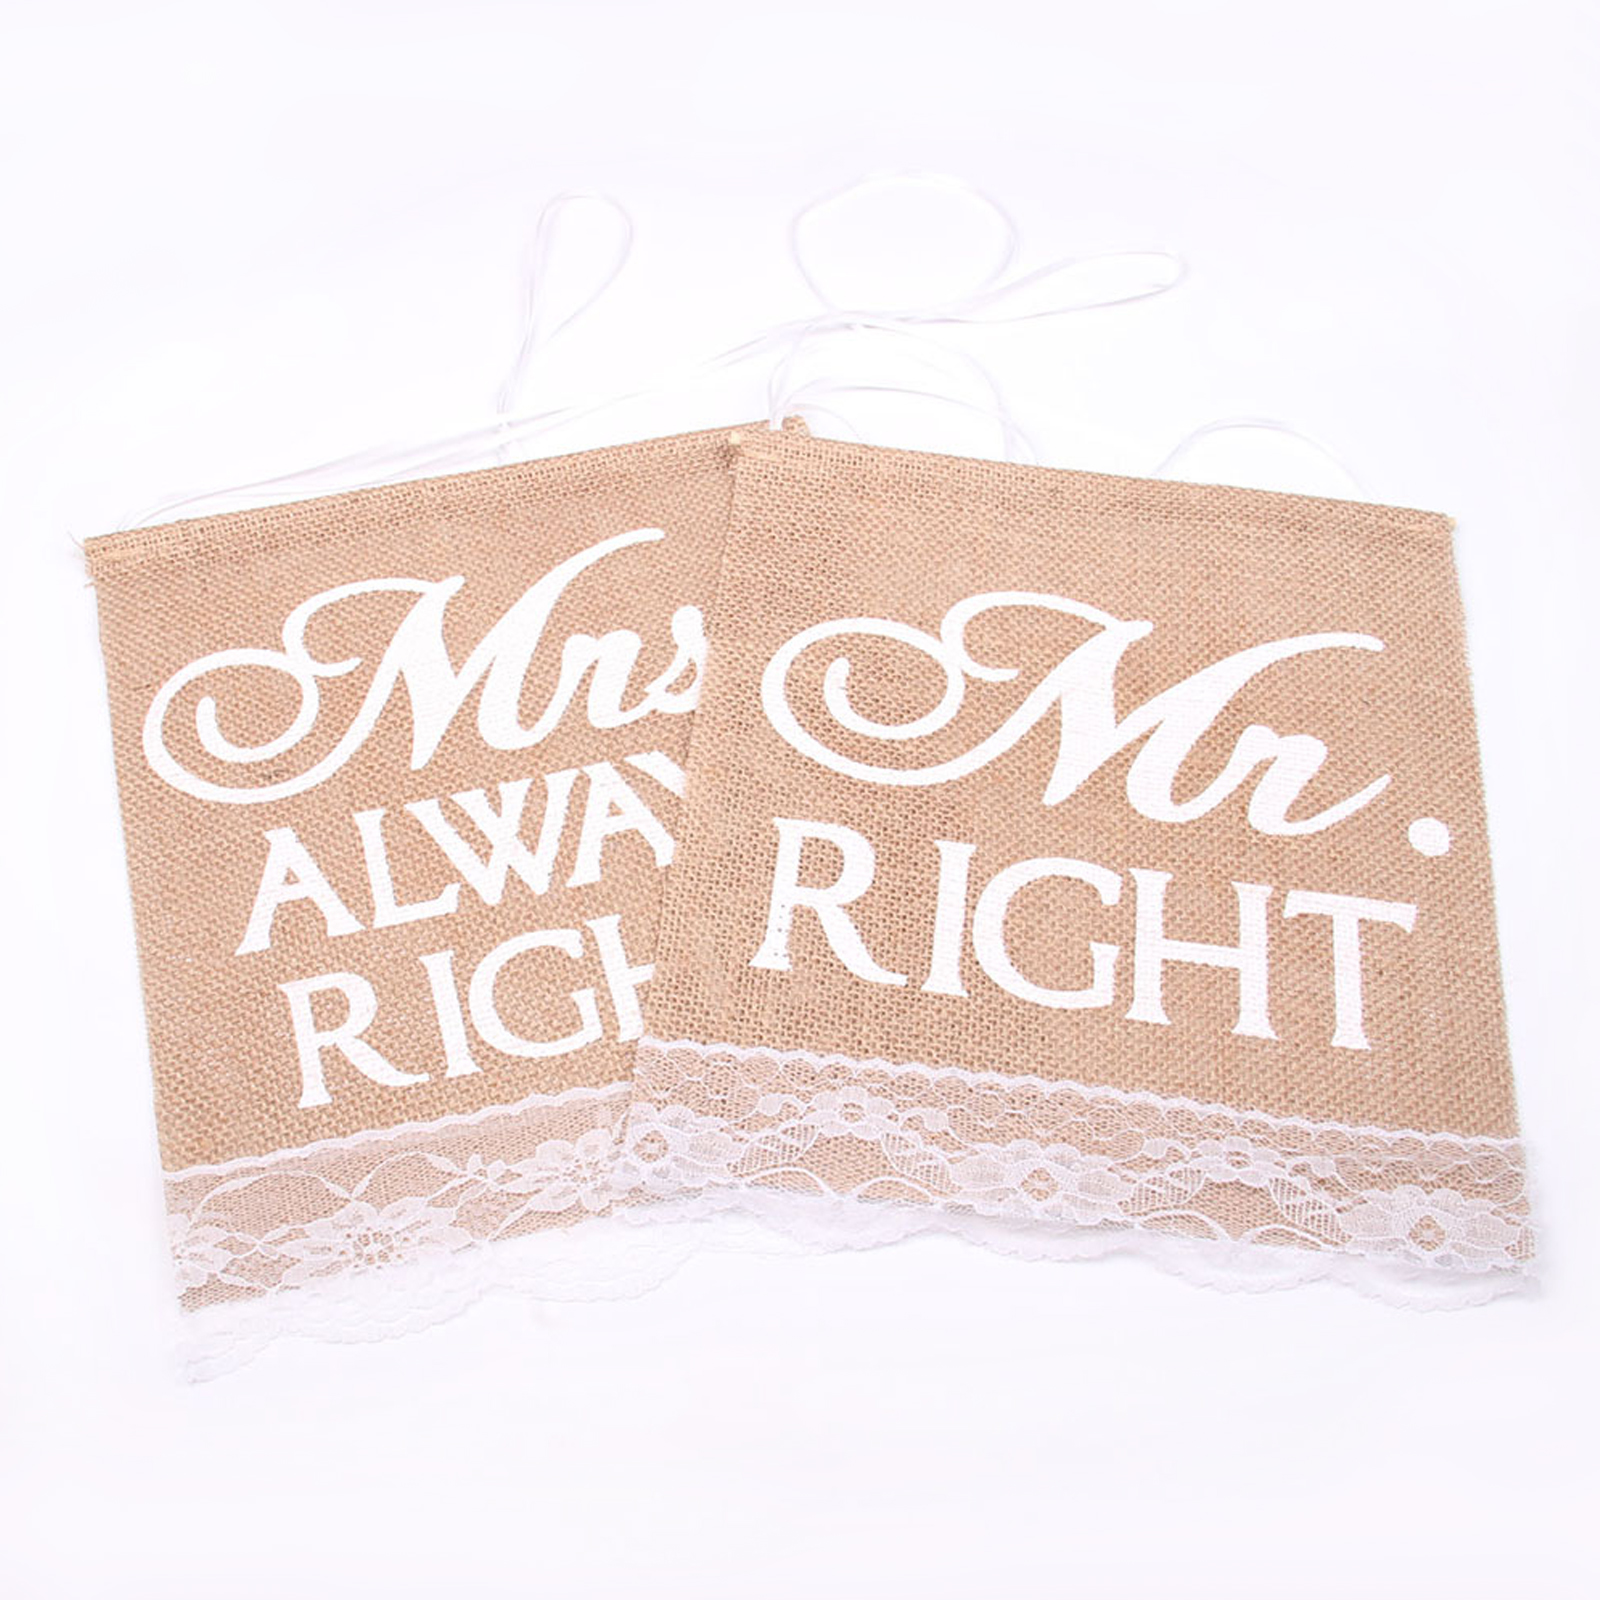 1set 24x28cm Wedding Party Khaki Mr Right & Mrs Always Right Pattern Chair Jute Hessian Chair Banner Rustic Lace Decor Burlap